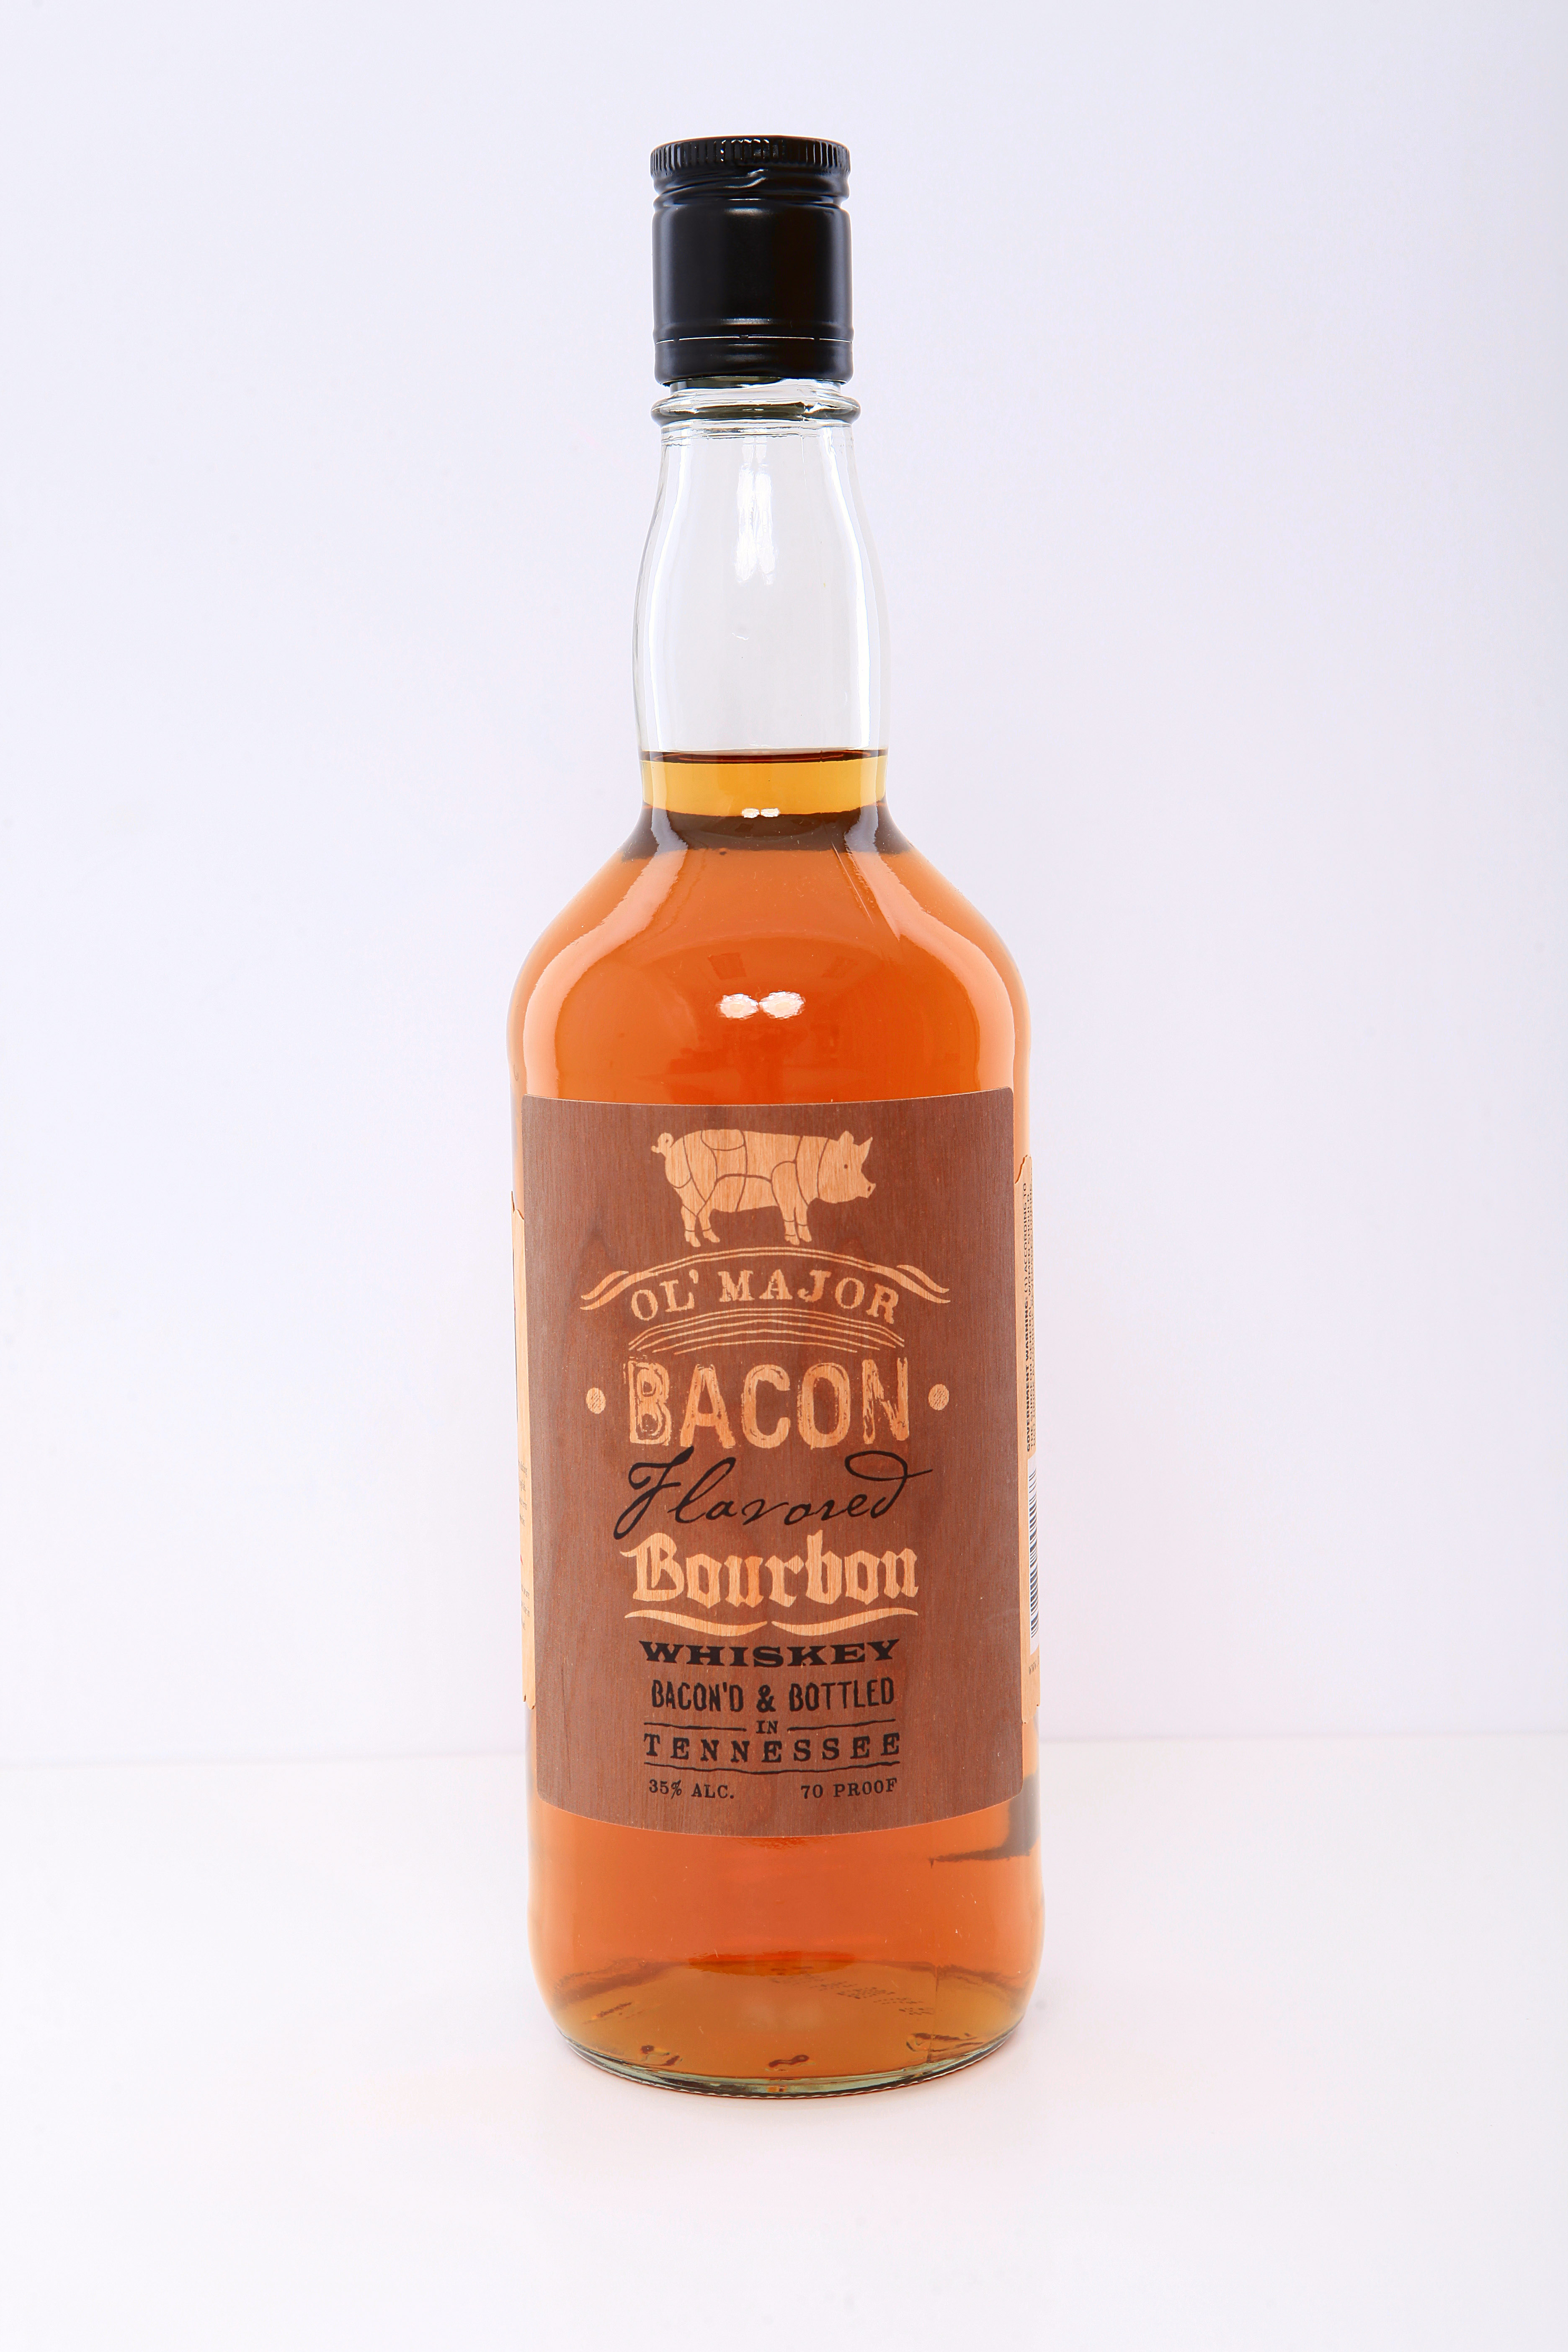 Ol' Major, gold medal bourbon made with real bacon by Branded Spirit USA